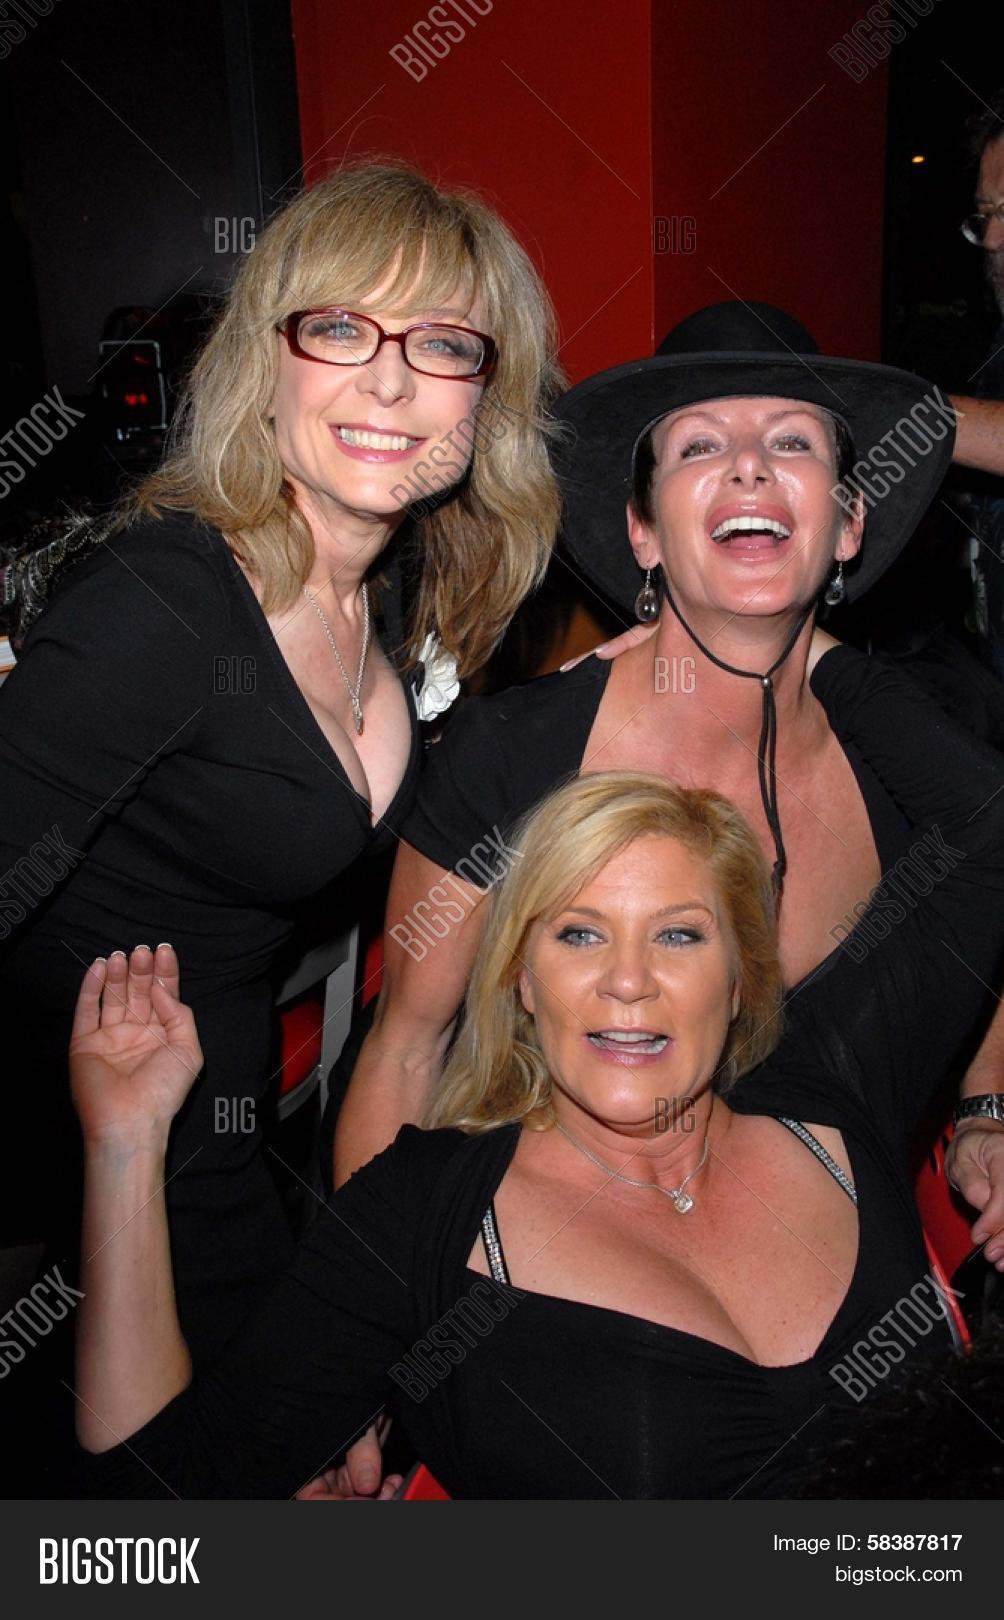 Forum on this topic: Diana Sands, ginger-lynn/